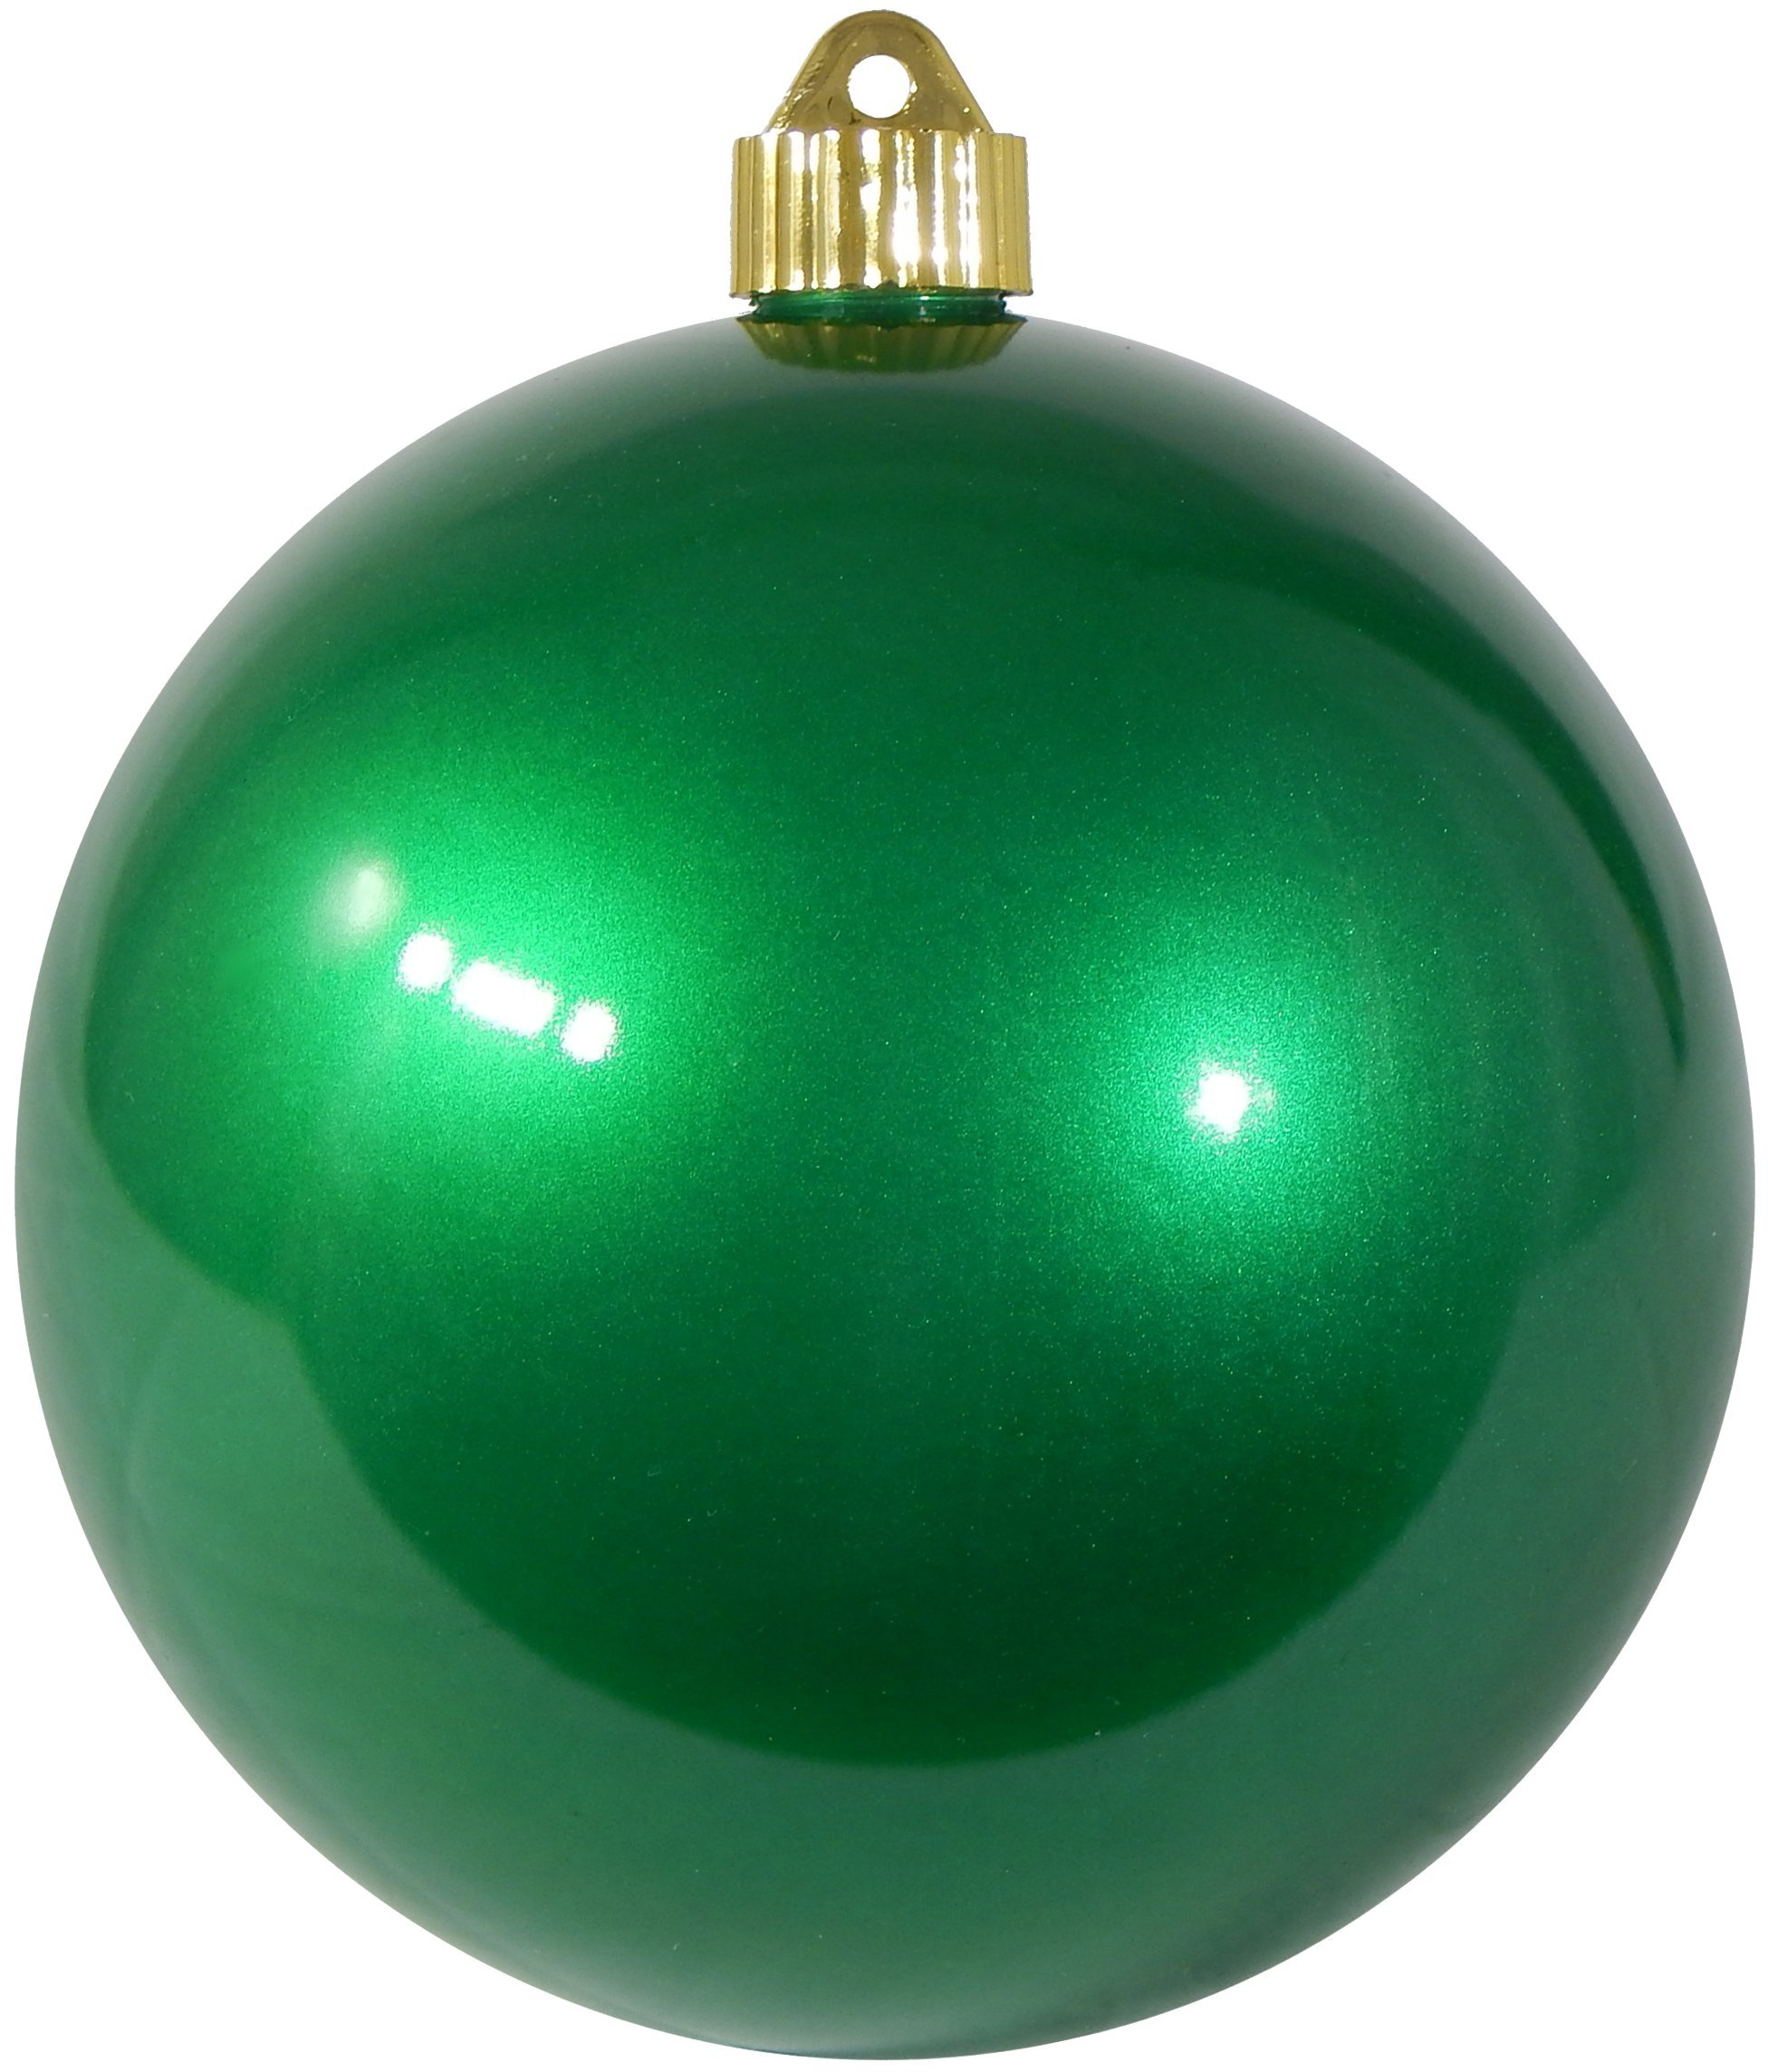 Christmas By Krebs CBK72978 Shatterproof UV-Resistant Christmas Ball Ornaments 6'' Candy Green 12 Piece